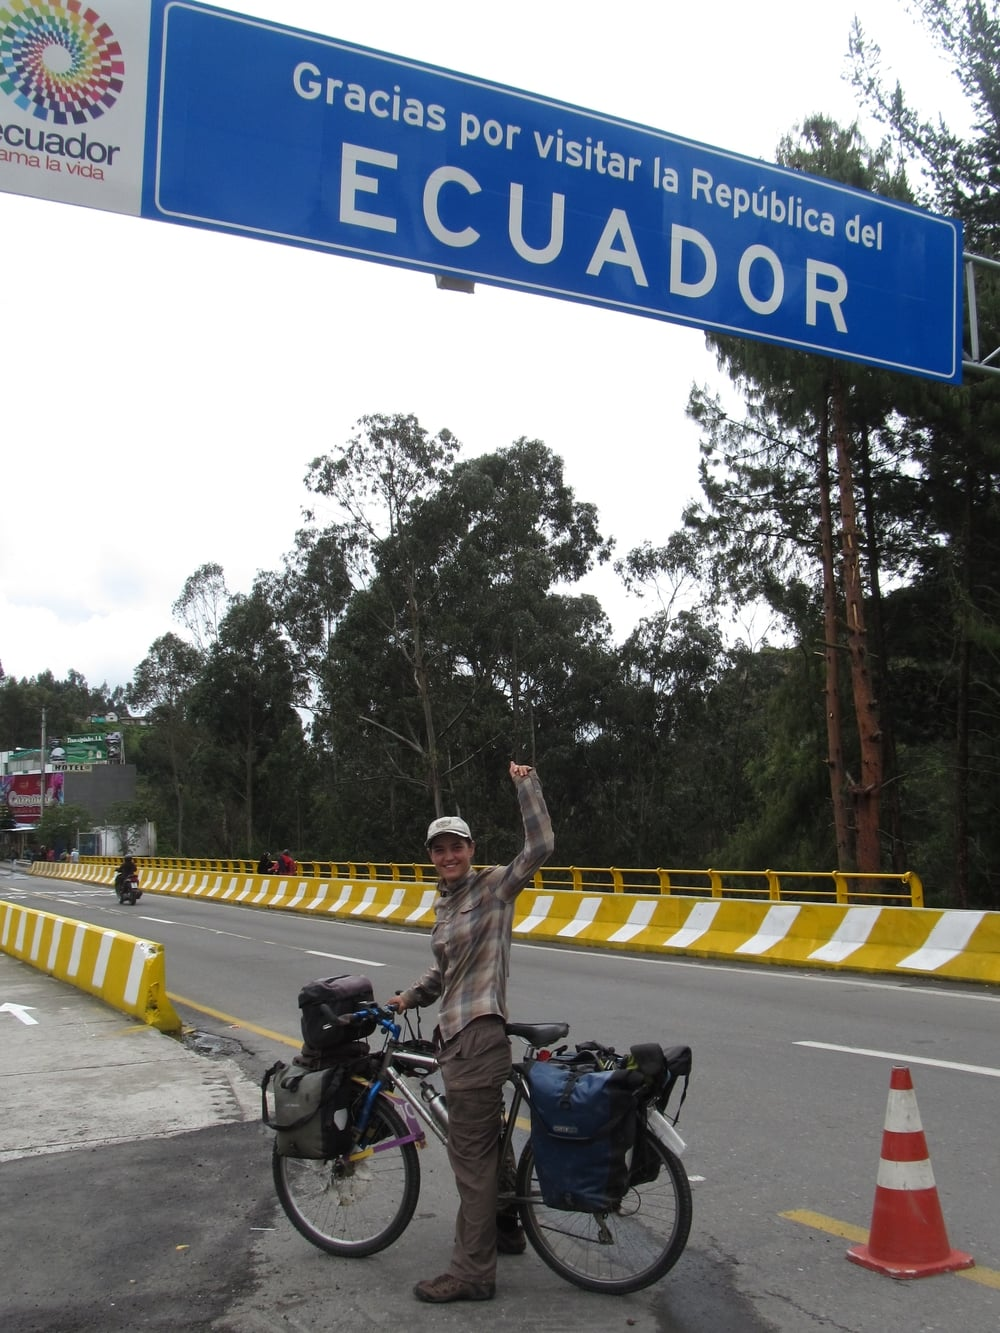 We say 'chao' to Ecuador and 'hola' to Colombia.